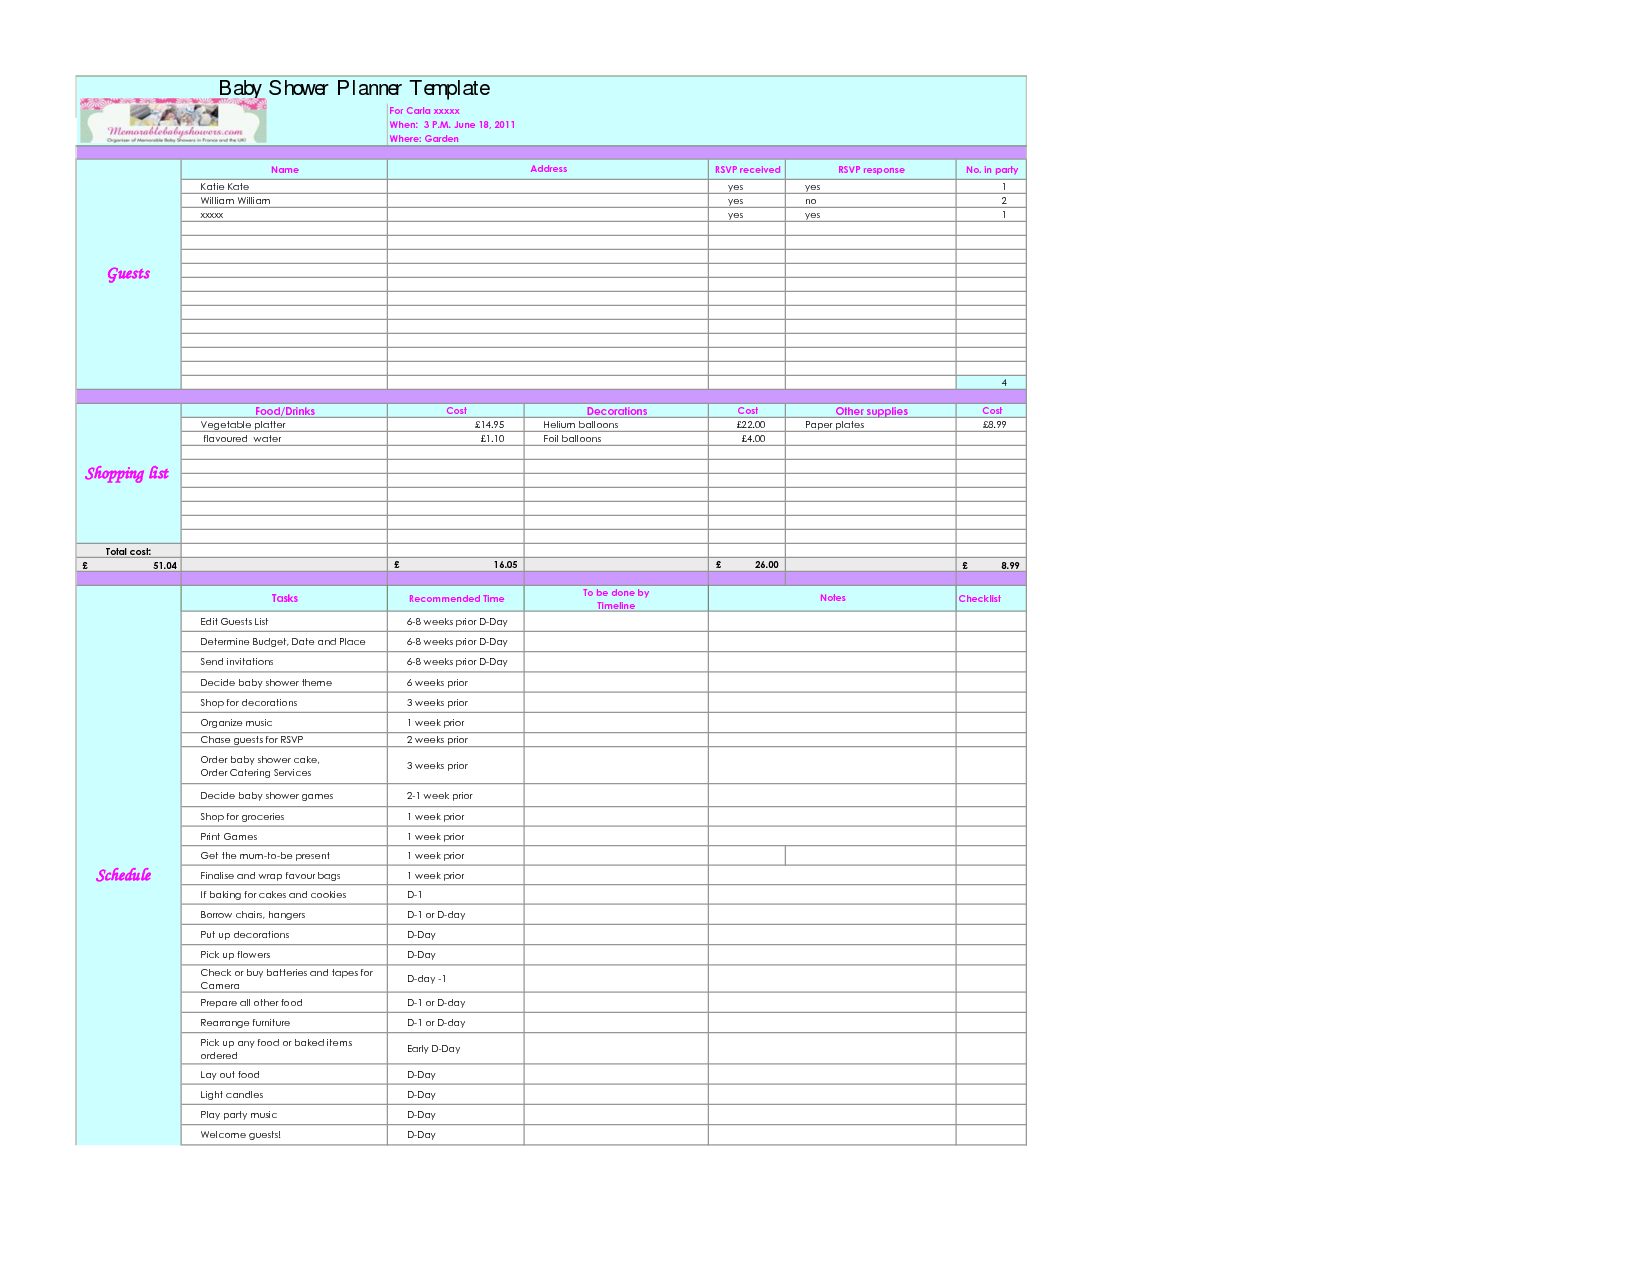 Baby Excel Spreadsheet In Example Of Baby Budget Spreadsheet Astonishing Design Shower